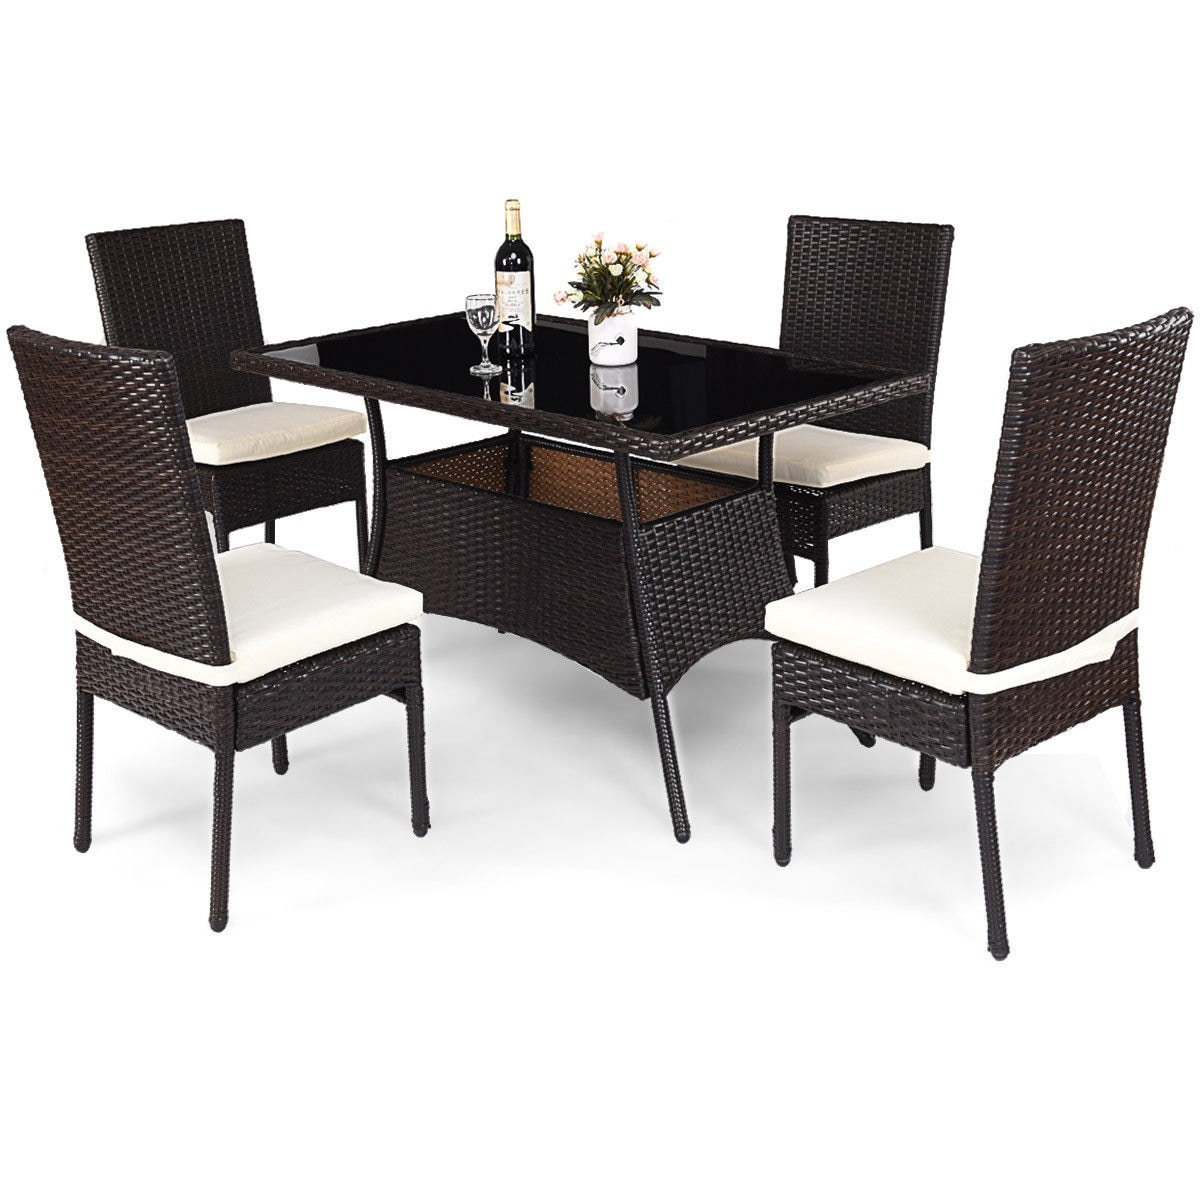 Rattan Table Costway 5 Piece Outdoor Patio Furniture Rattan Dining Table Cushioned Chairs Set Brown